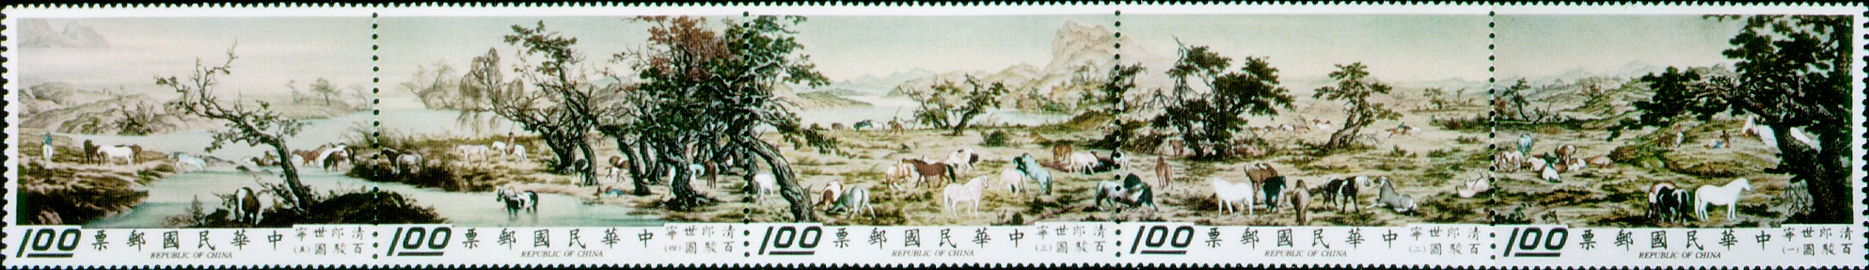 (S68.1  S68.2  S68.3  S68.4  S68.5)Special 68 Ancient Painting- One Hundred Horses - Postage Stamps (1970)